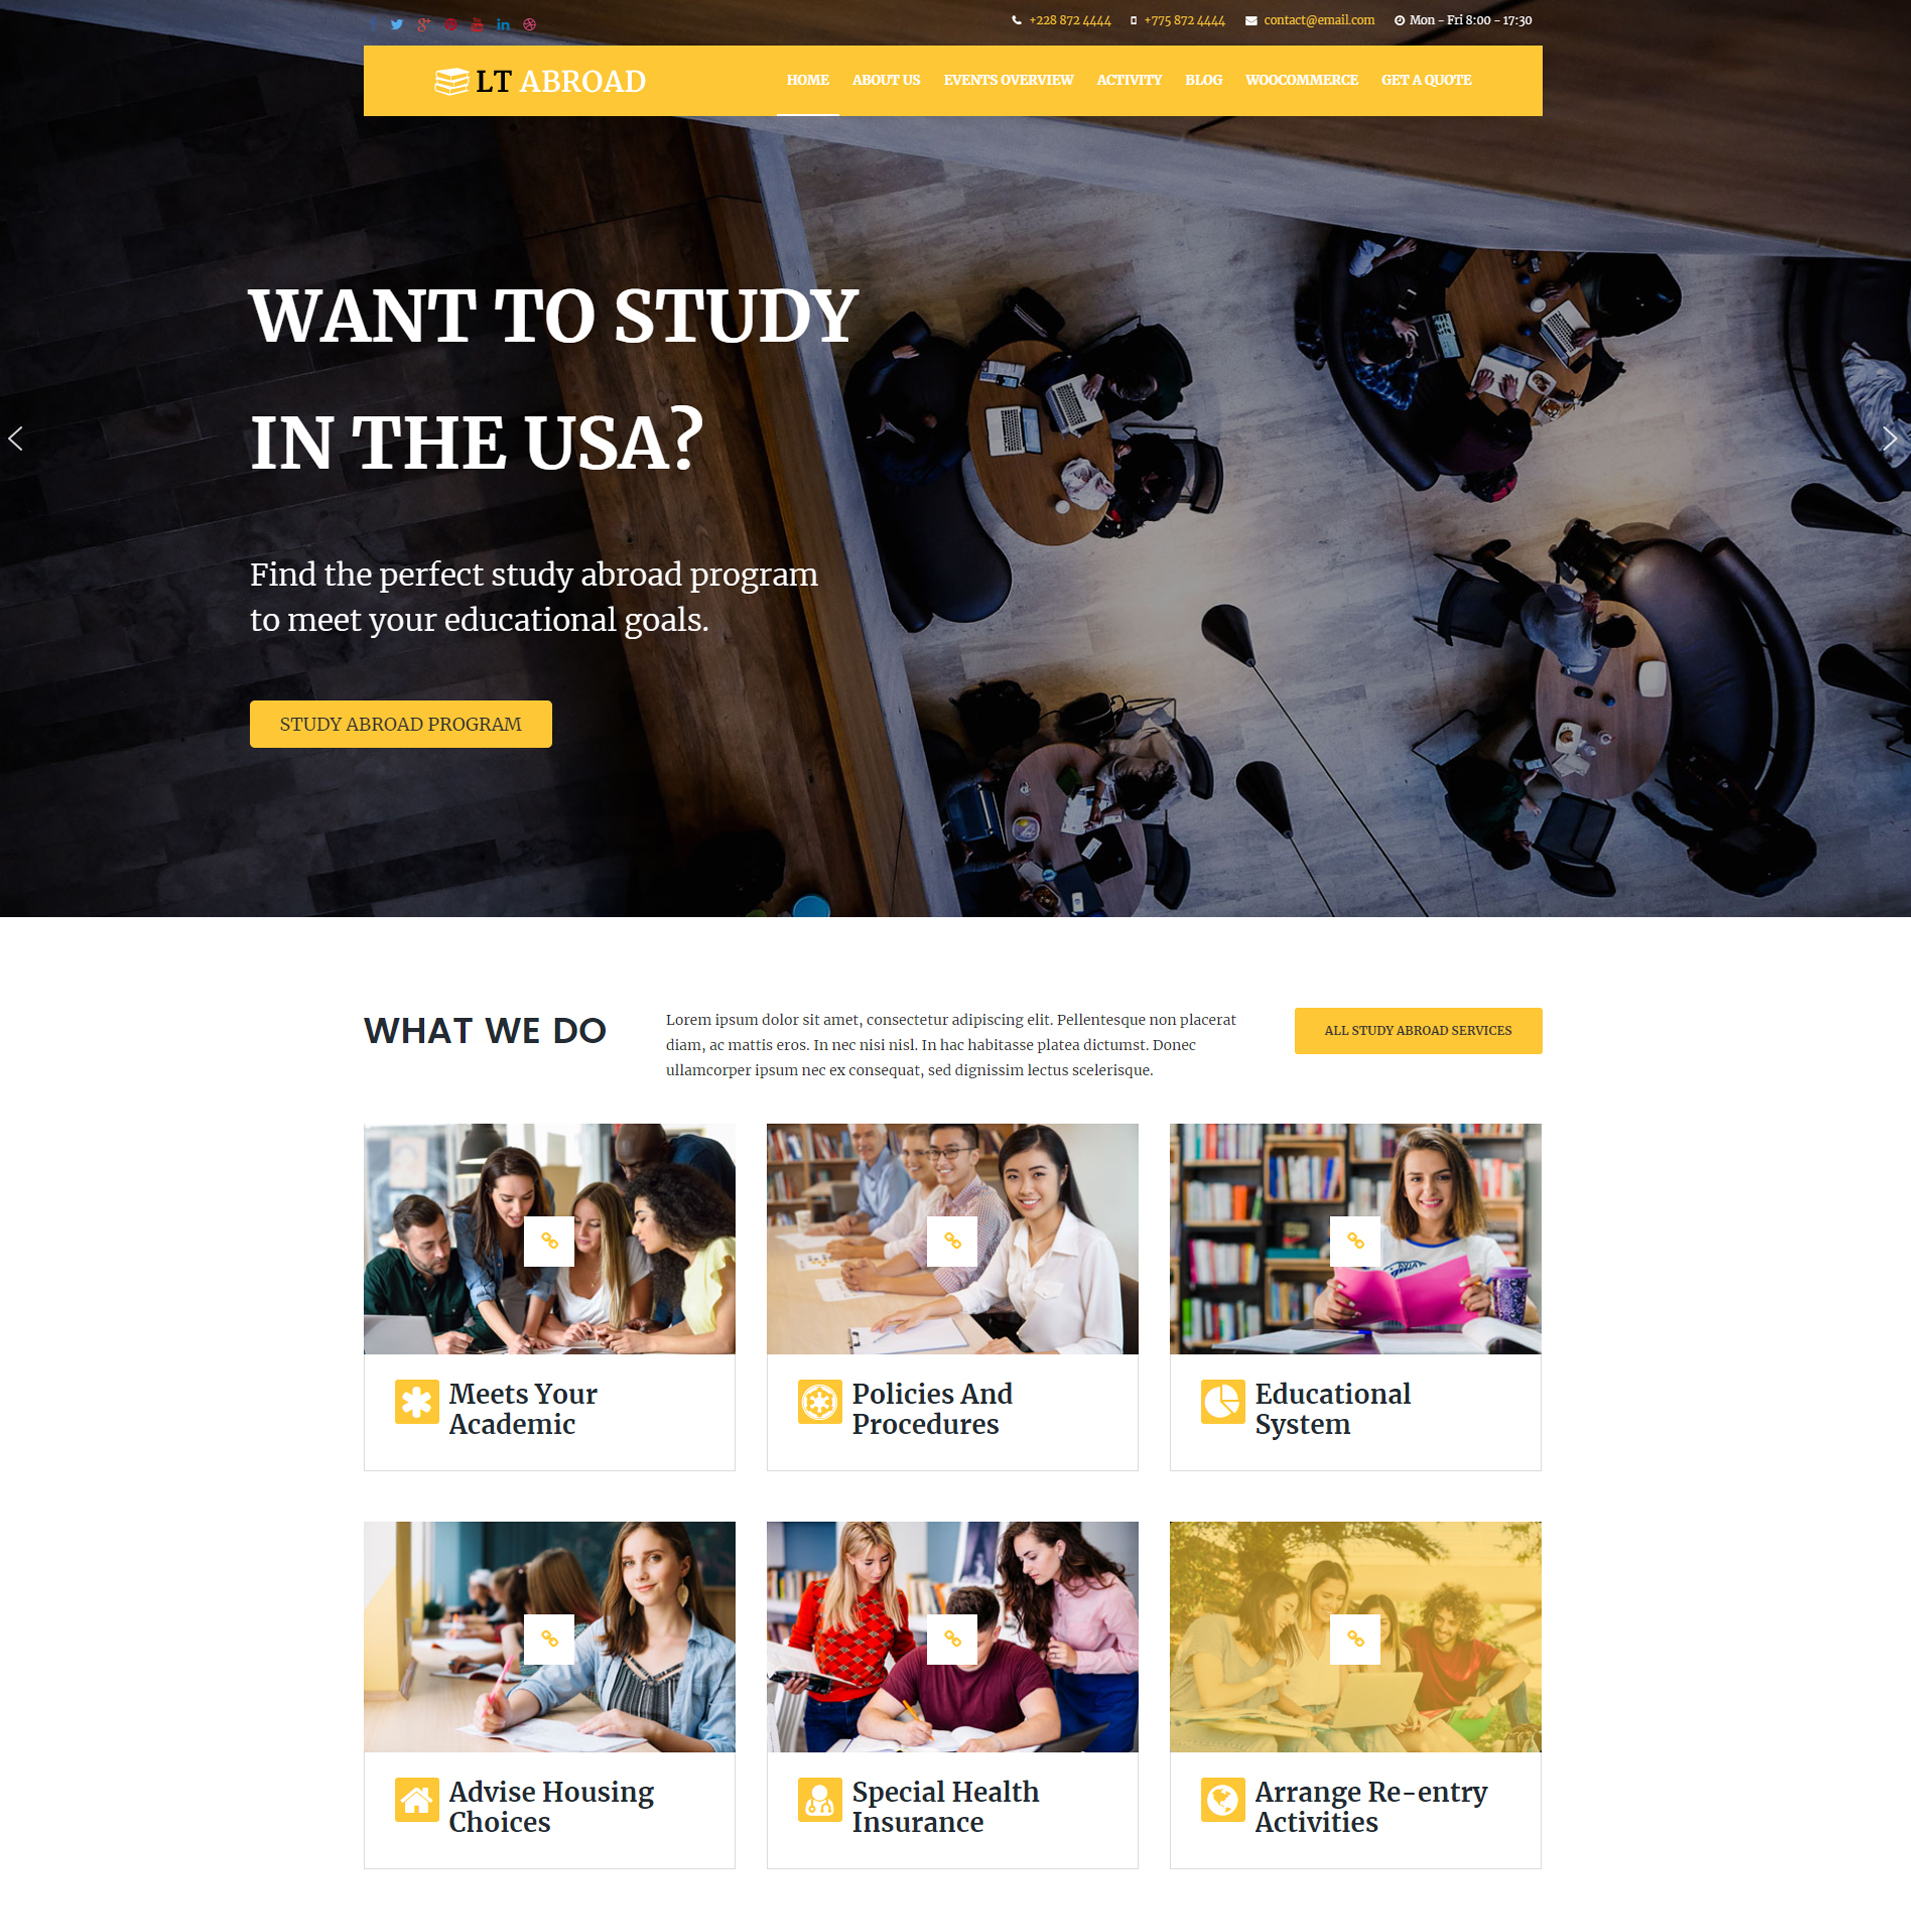 lt-abroad-free-responsive-wordpress-theme-screen